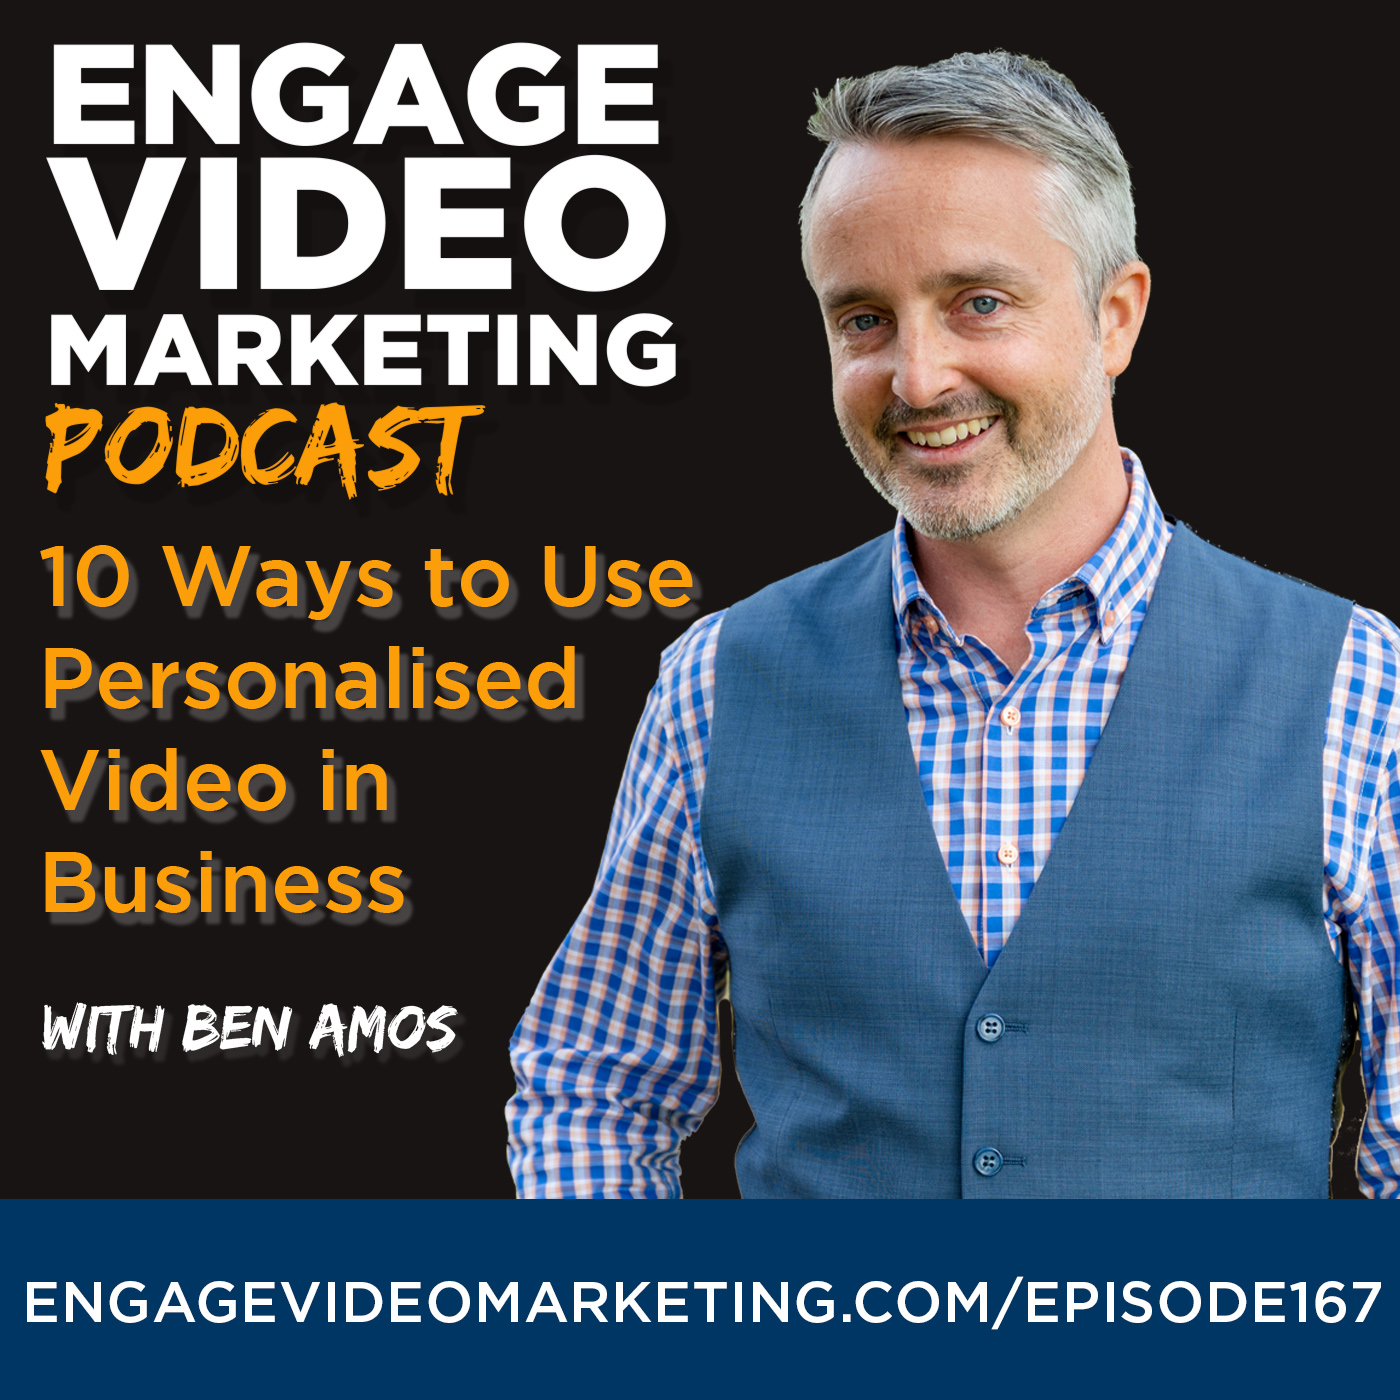 10 Ways to Use Personalised Video in Business with Ben Amos